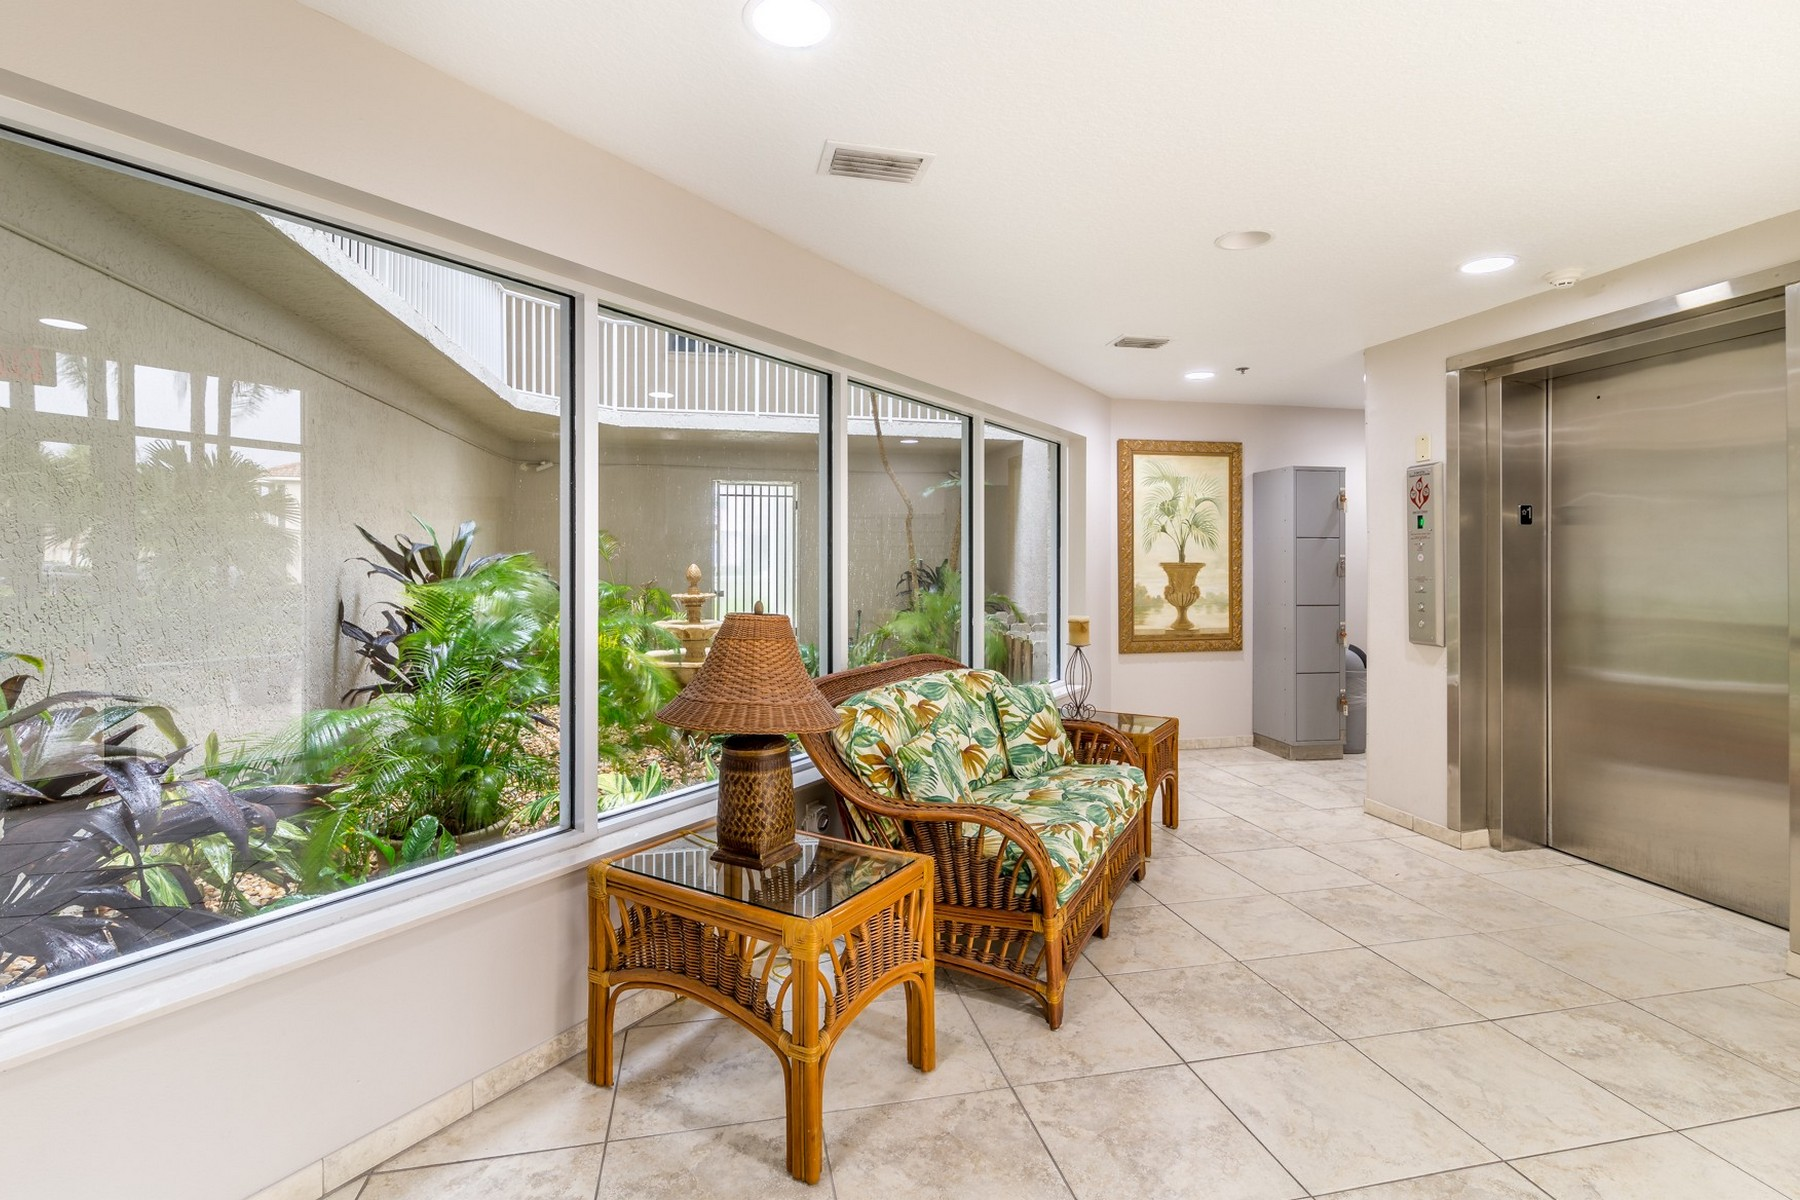 Additional photo for property listing at Oceanfront Penthouse in Sand Dunes 425 Buchanan Avenue #502 Cape Canaveral, Florida 32920 United States